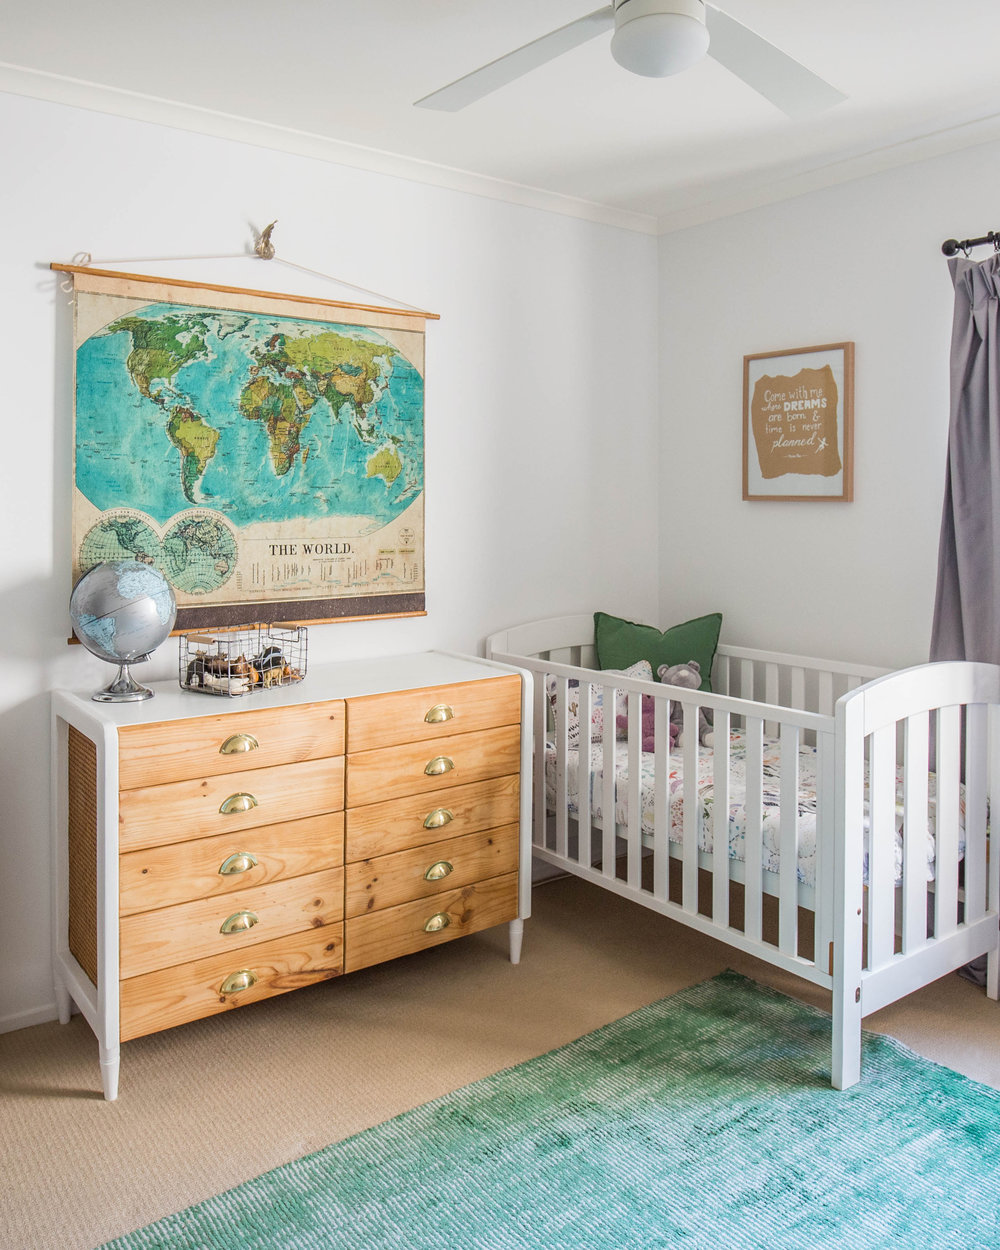 Tanika's Baby Room - Nursery - Interior Design - Tanika Blair Stying & Photography - IMG_8919.jpg